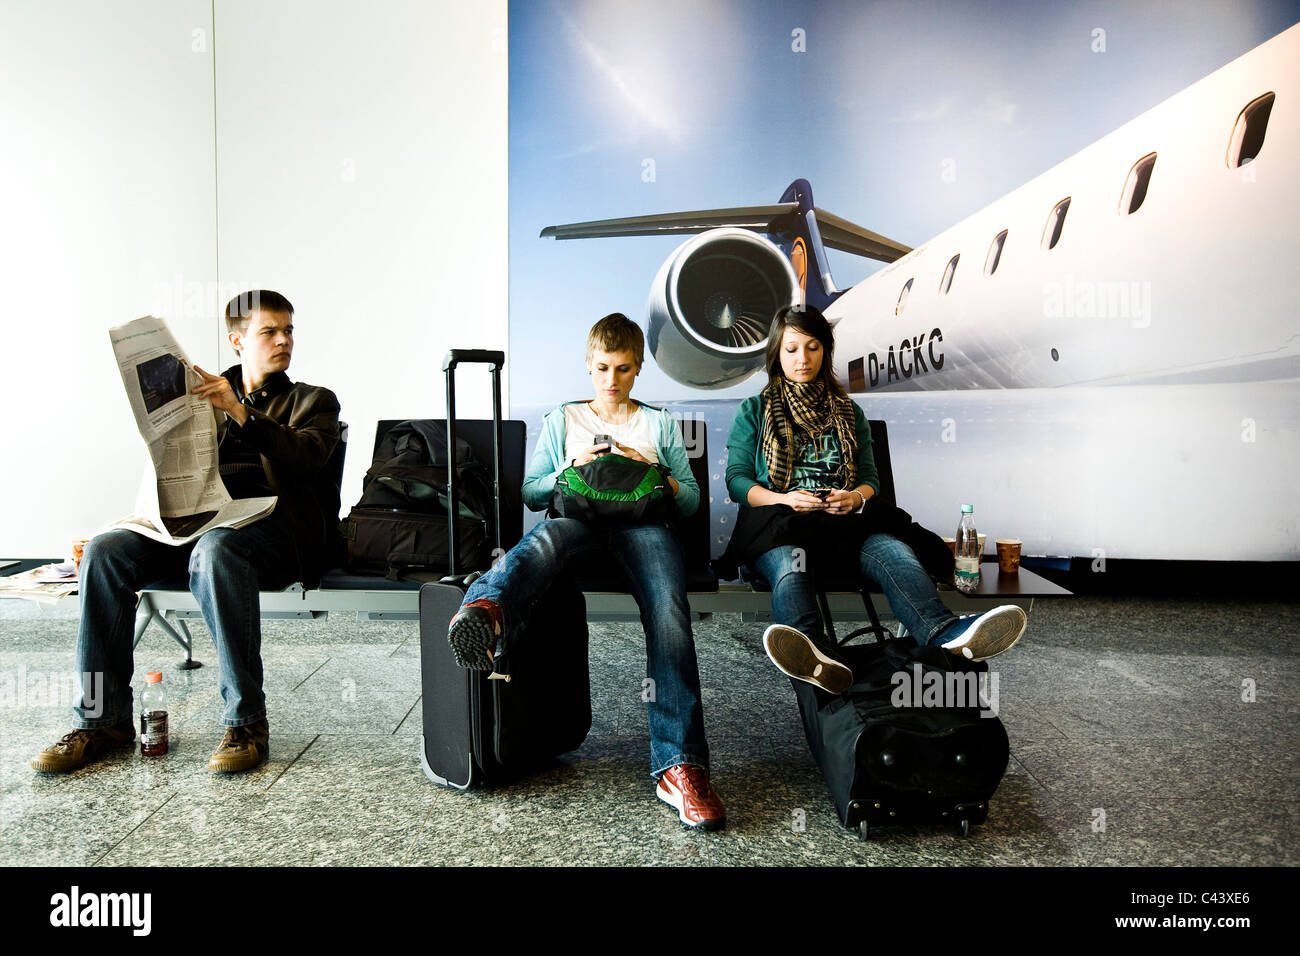 Three young people waiting to depart their flight in Frankfurt airport. - Stock Image